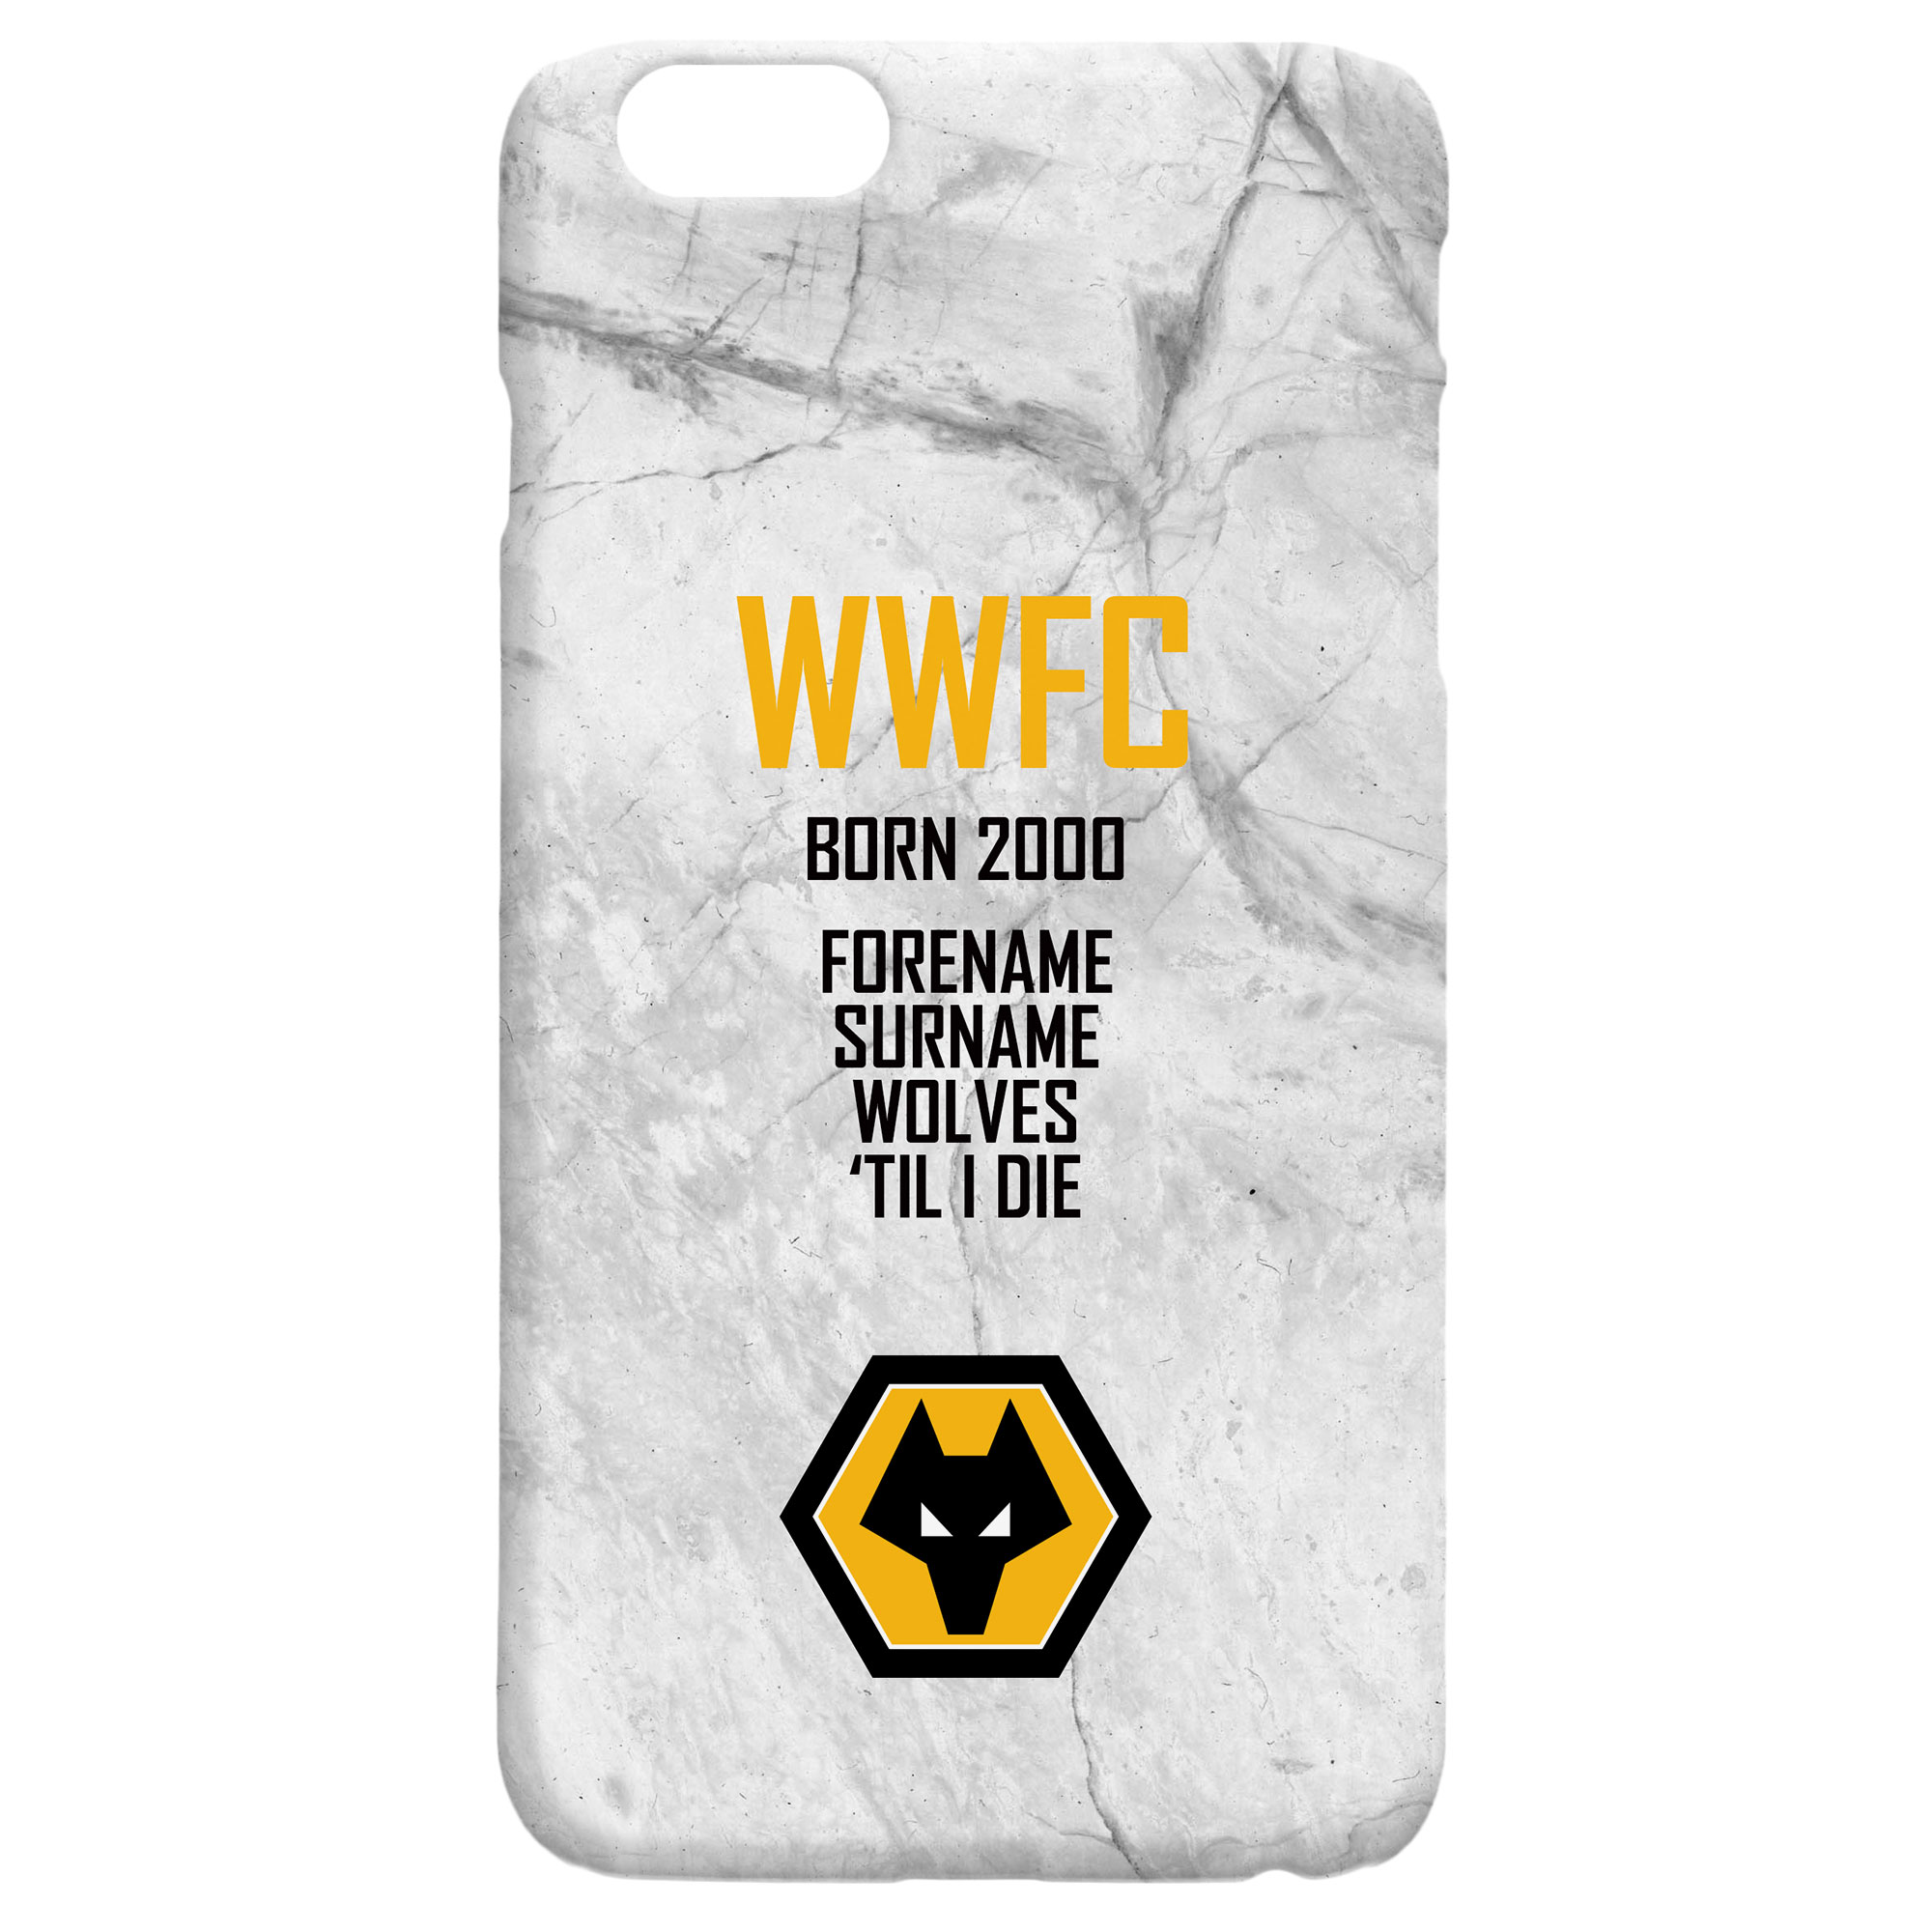 Wolves 'Til I Die Hard Back Phone Case